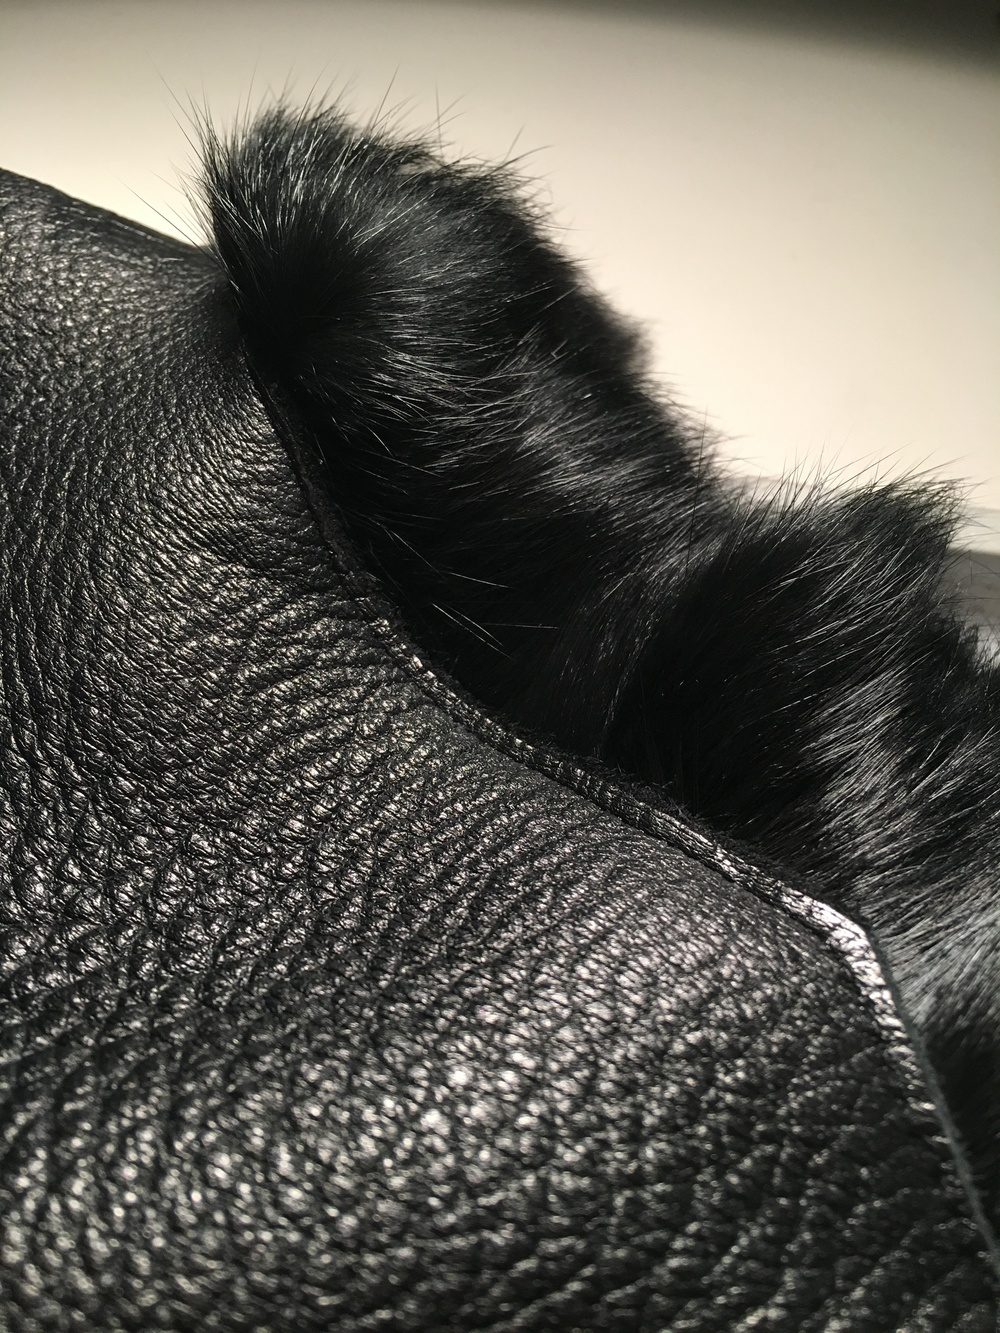 Fur Close Up.jpg